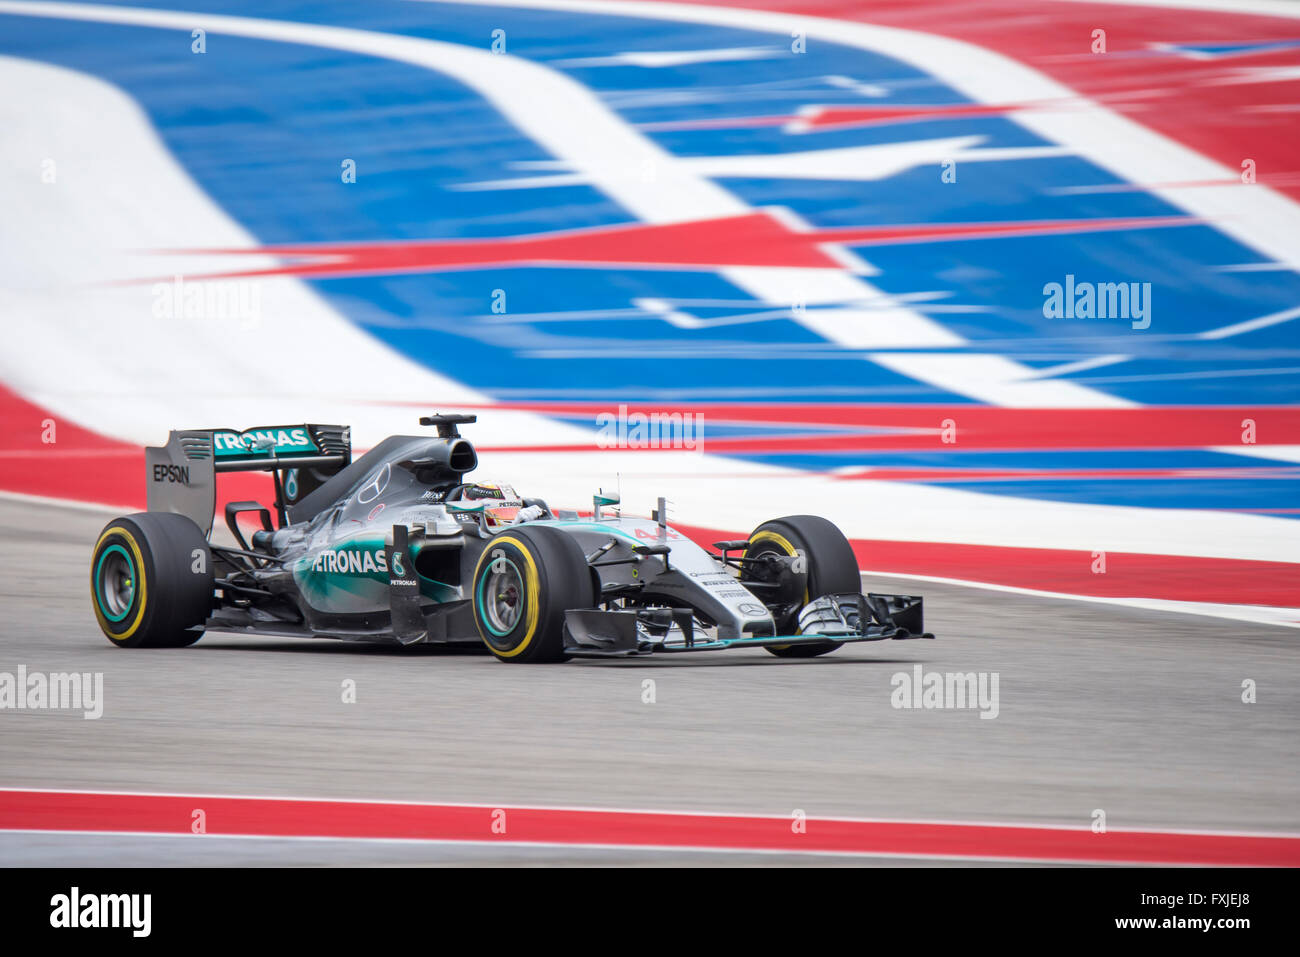 Lewis Hamilton of Mercedes AMG Petronas seen on the final lap of the 2015 United States Grand Prix at Circuit of Stock Photo